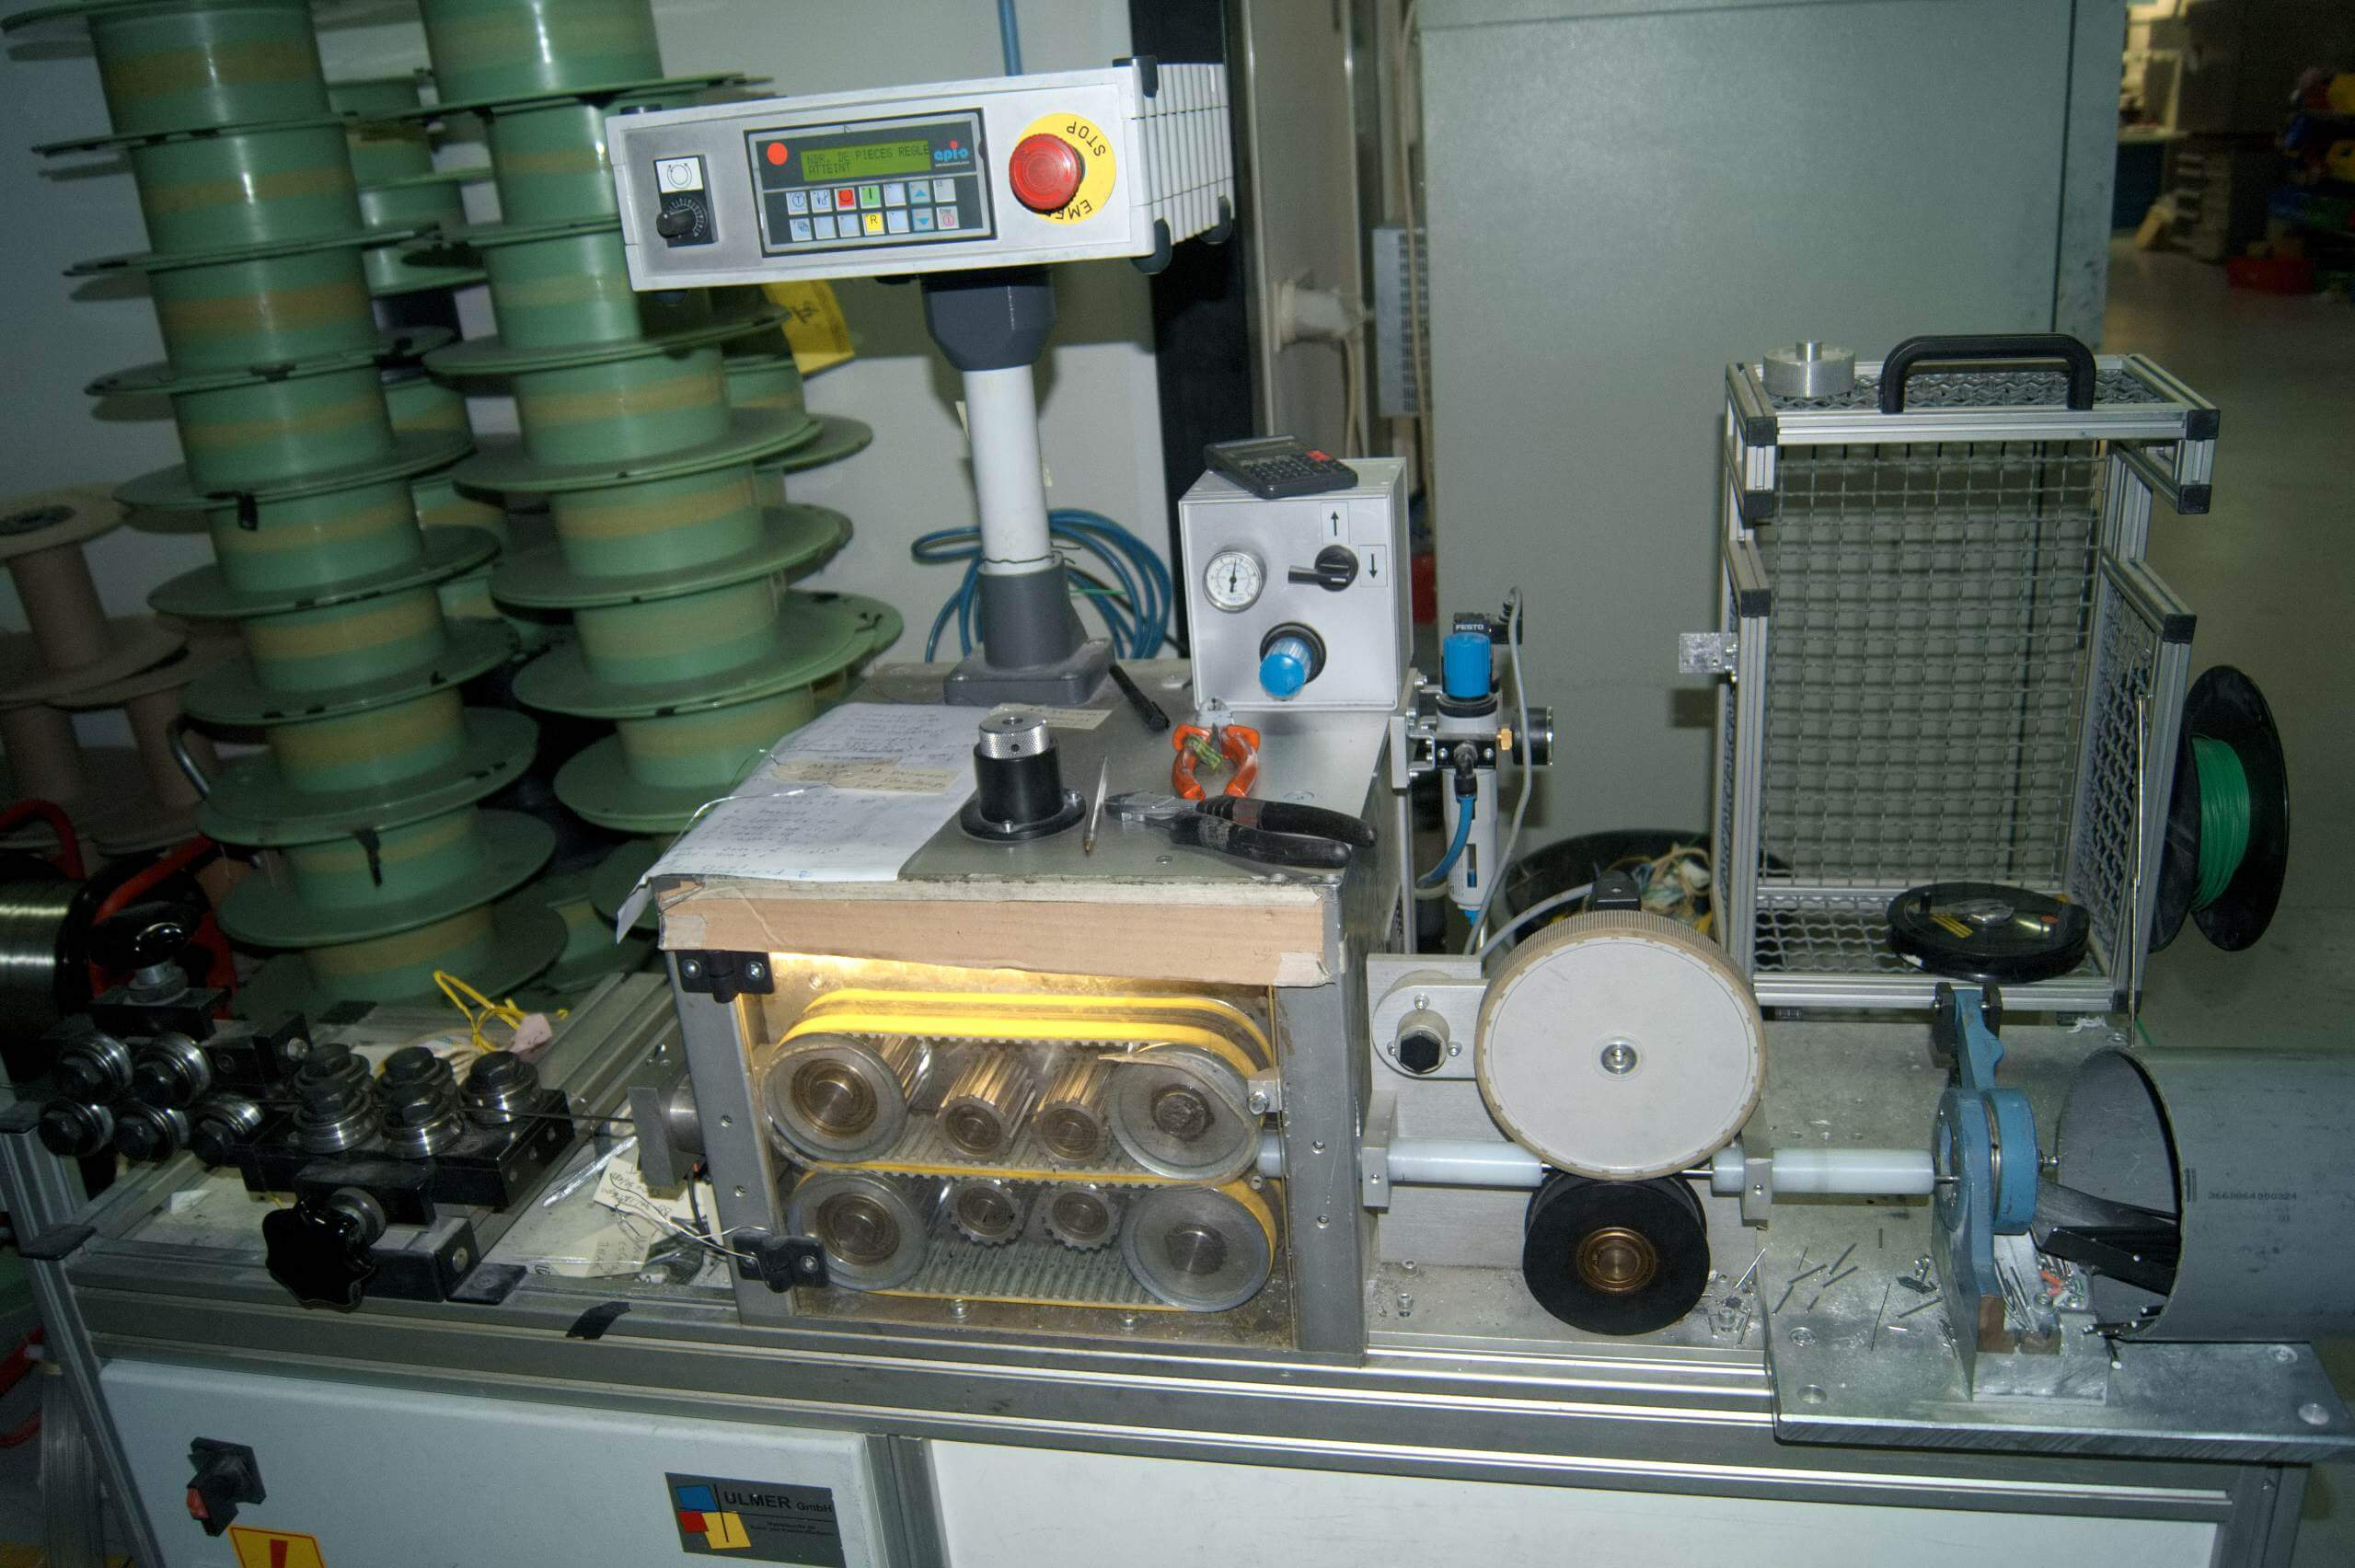 MACHINERIE SFINT THERMOCOUPLE TRESCAL